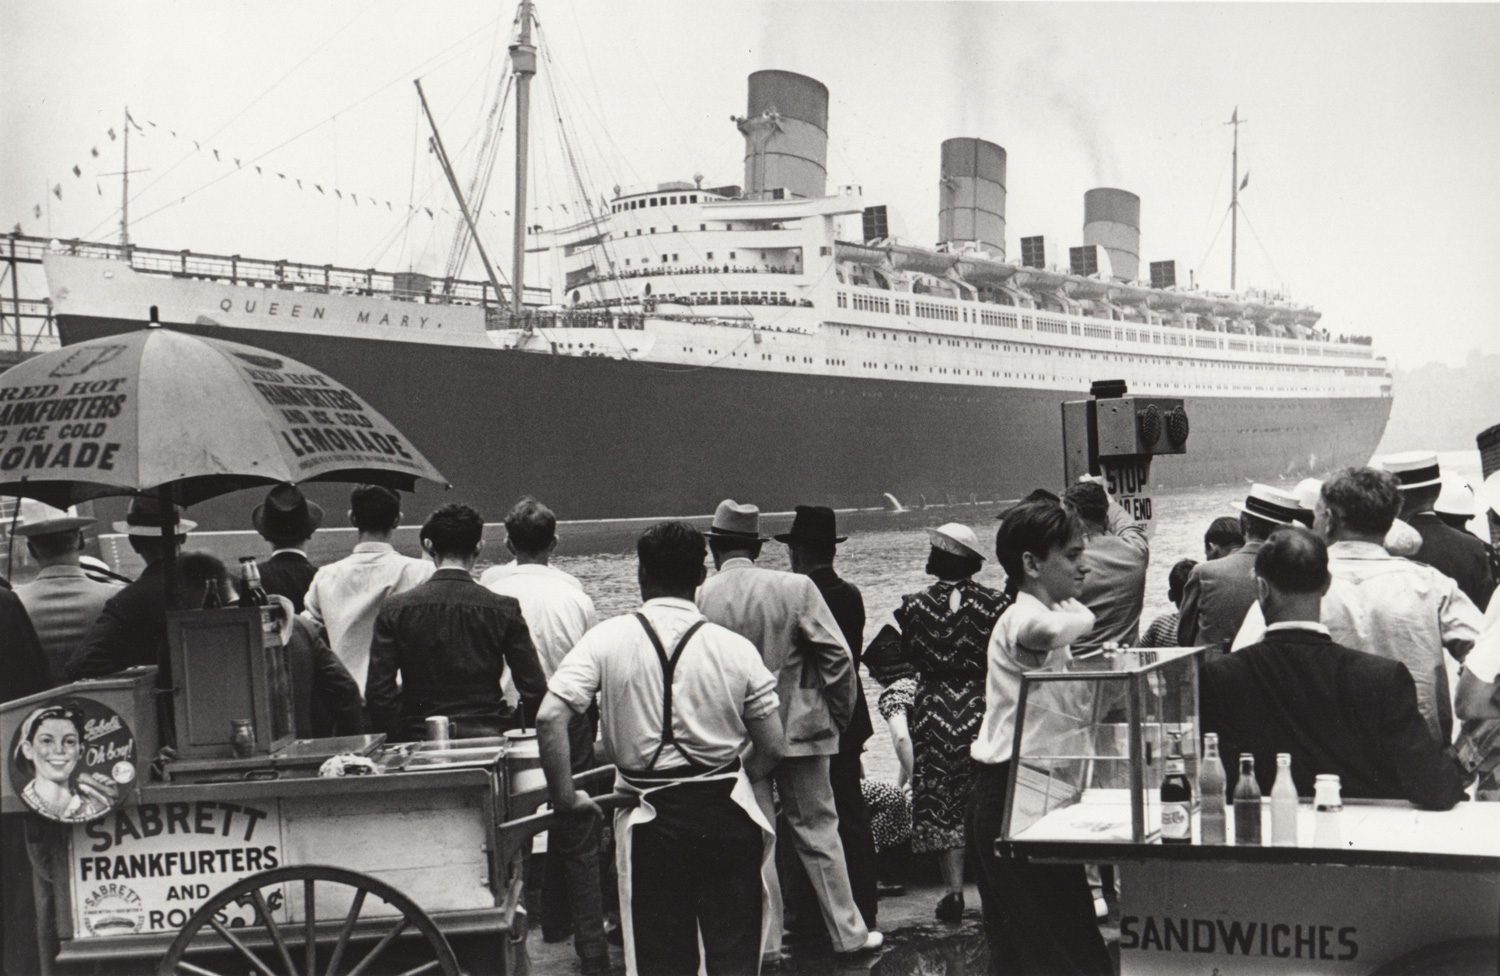 Queen Mary (hotdog stand)